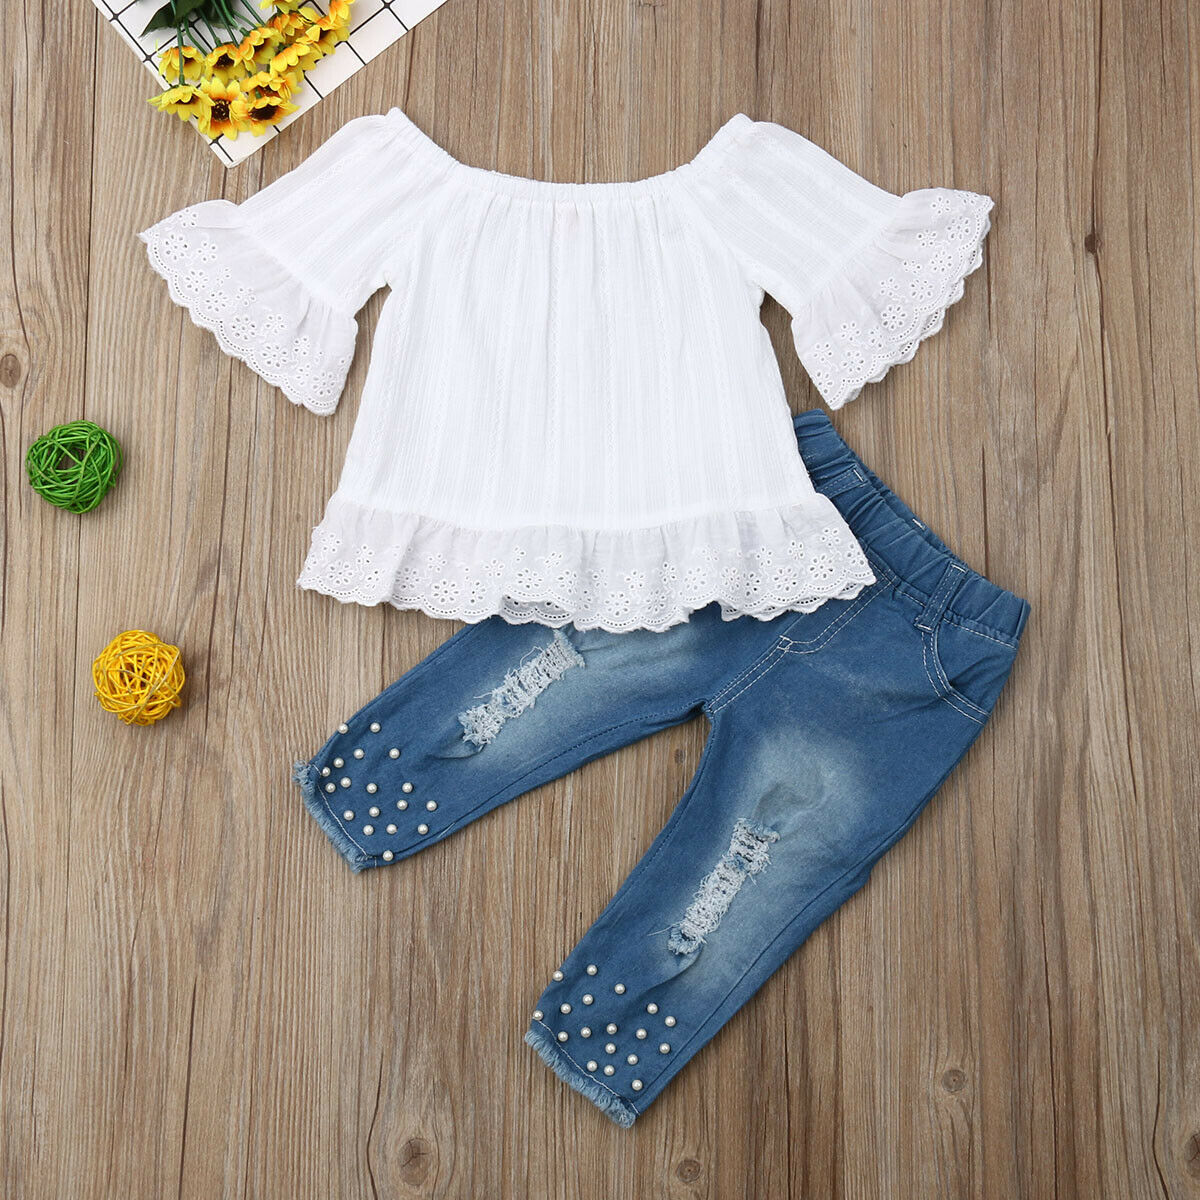 Children Toddler Kid Baby Girl Clothes Set White Tops T-shirt and Denim Long Pants Jeans Outfits Sets 1-6 Year 1